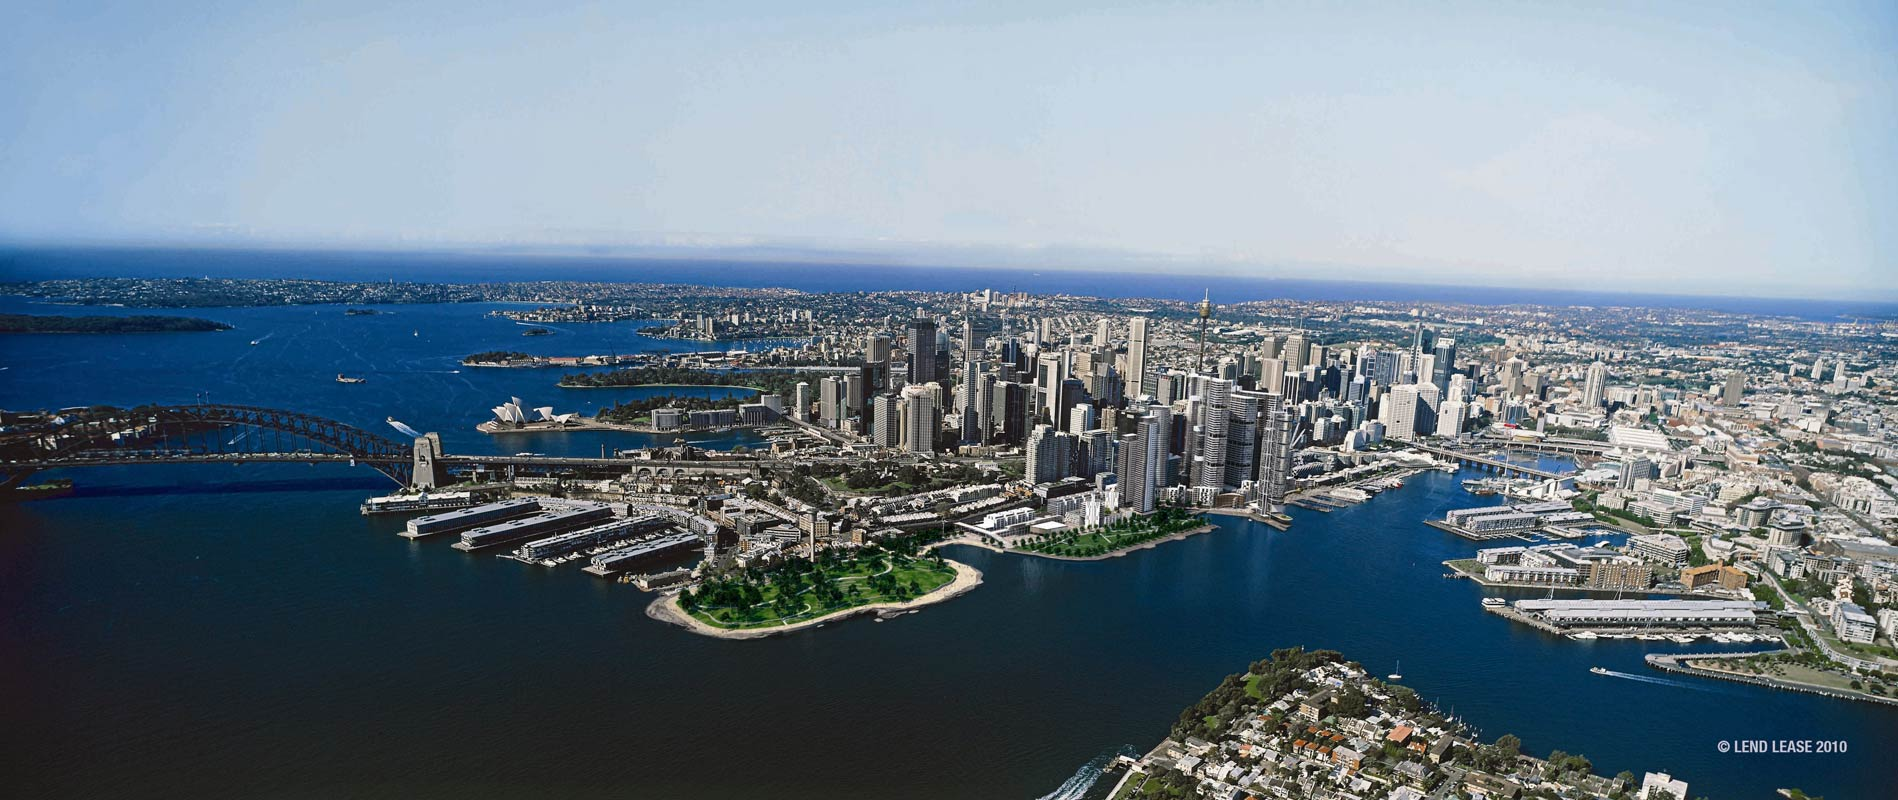 Barangaroo_Hero_Aerial-HIGH-RES.jpg